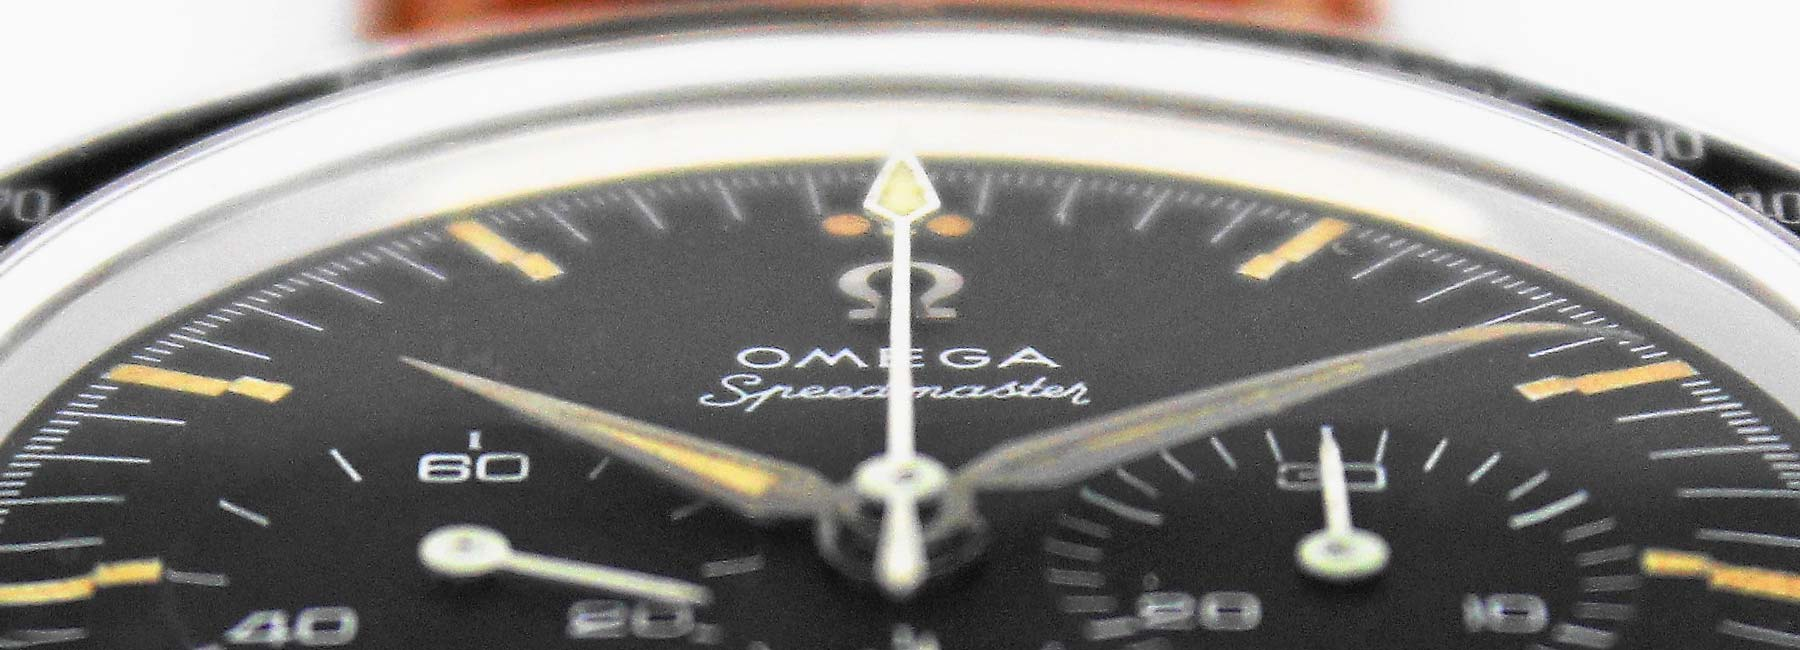 La Clessidra Orologi ||| New and used watches in Milan